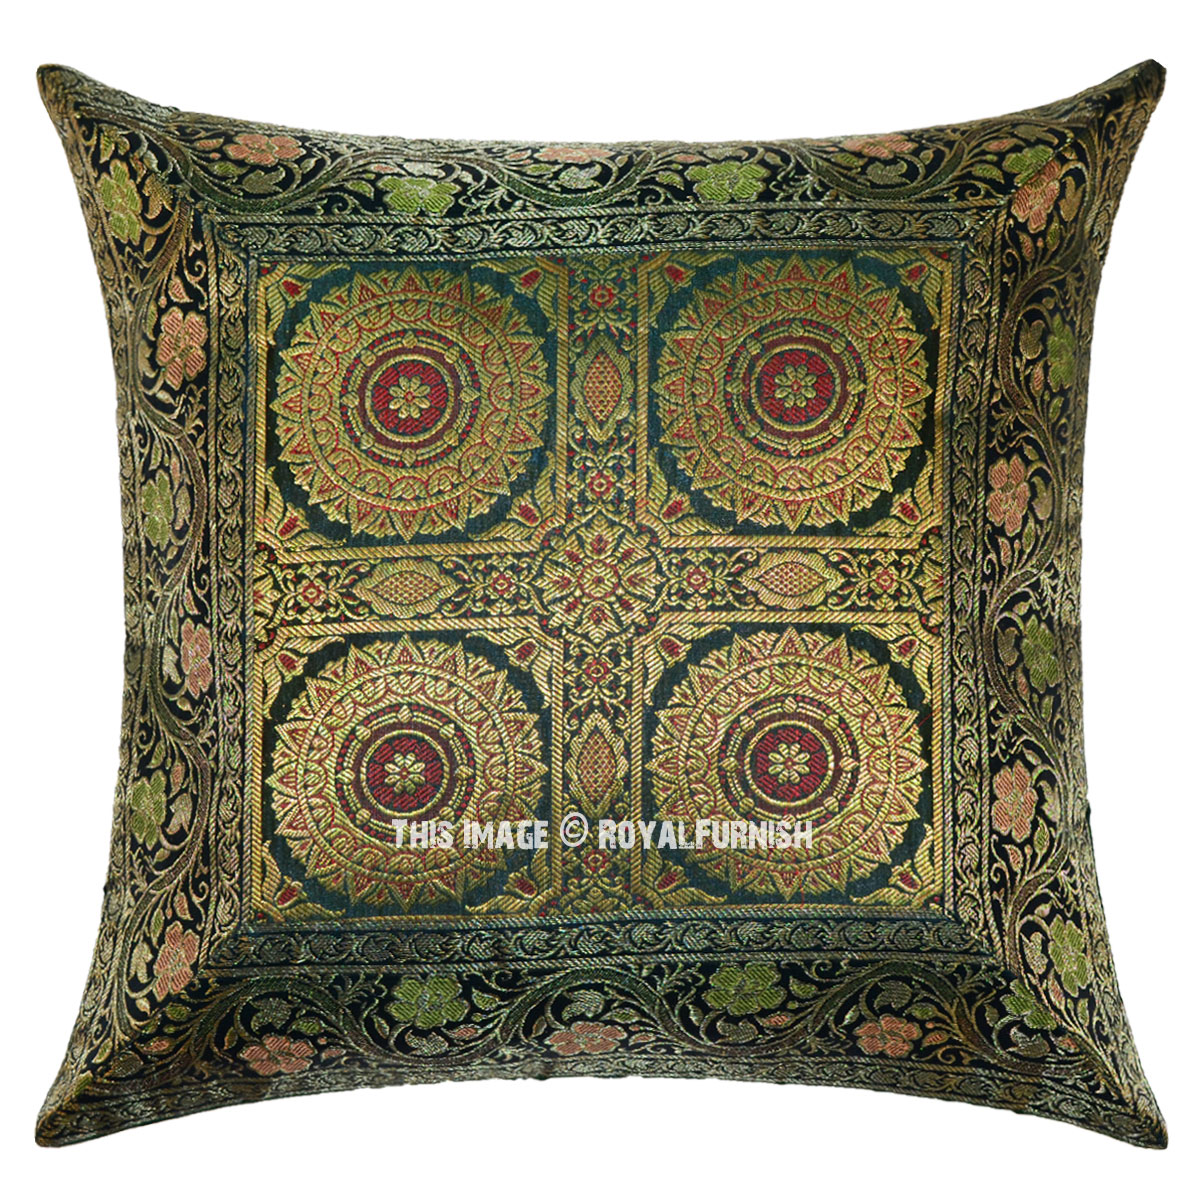 Dark Green Decorative Floral Mandala Four Circle Silk Brocade Throw Pillow Case